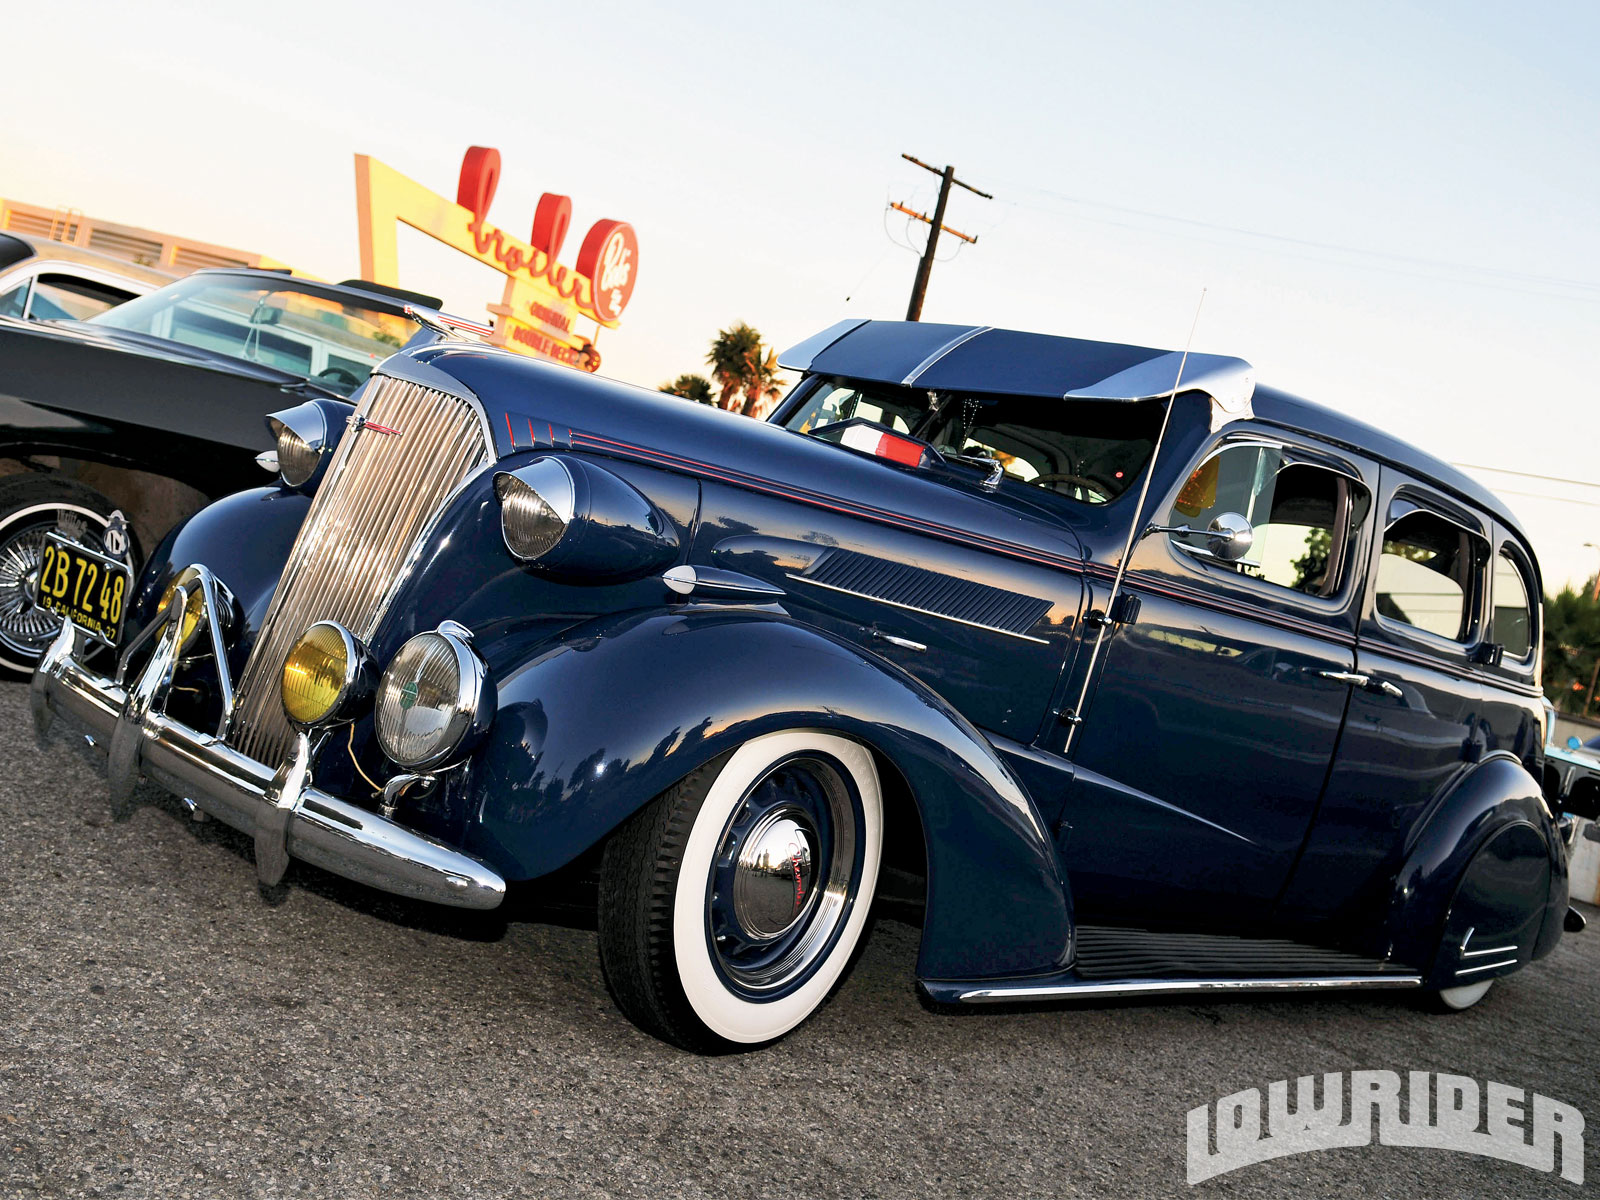 Vintage Bombs South Side Car Club Cruise Night Lowrider